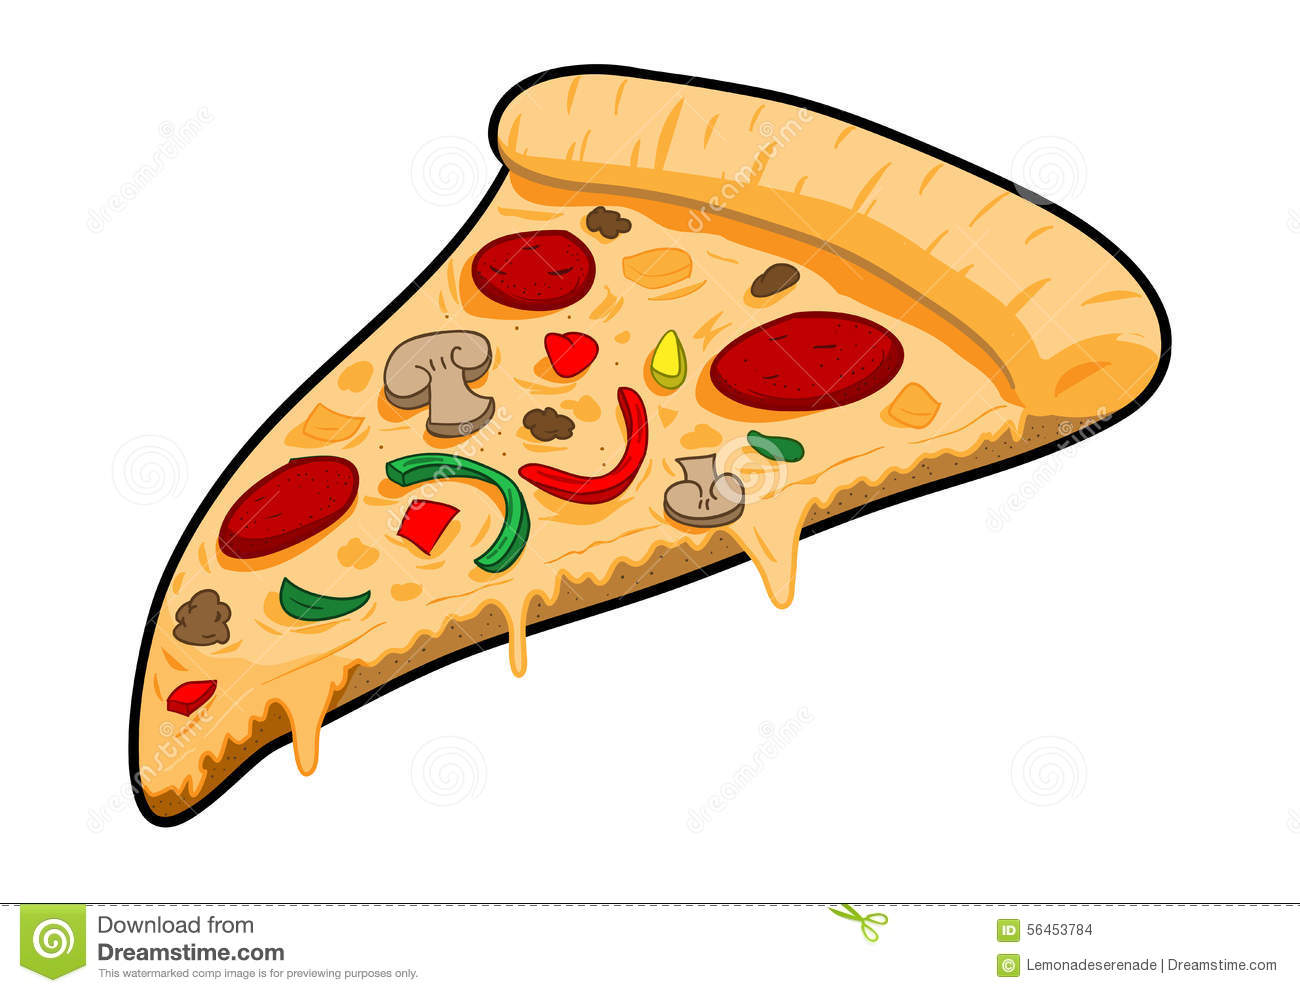 a slice of pizza stock vector illustration of edit  cloud clip art turtle images clip art turtles running